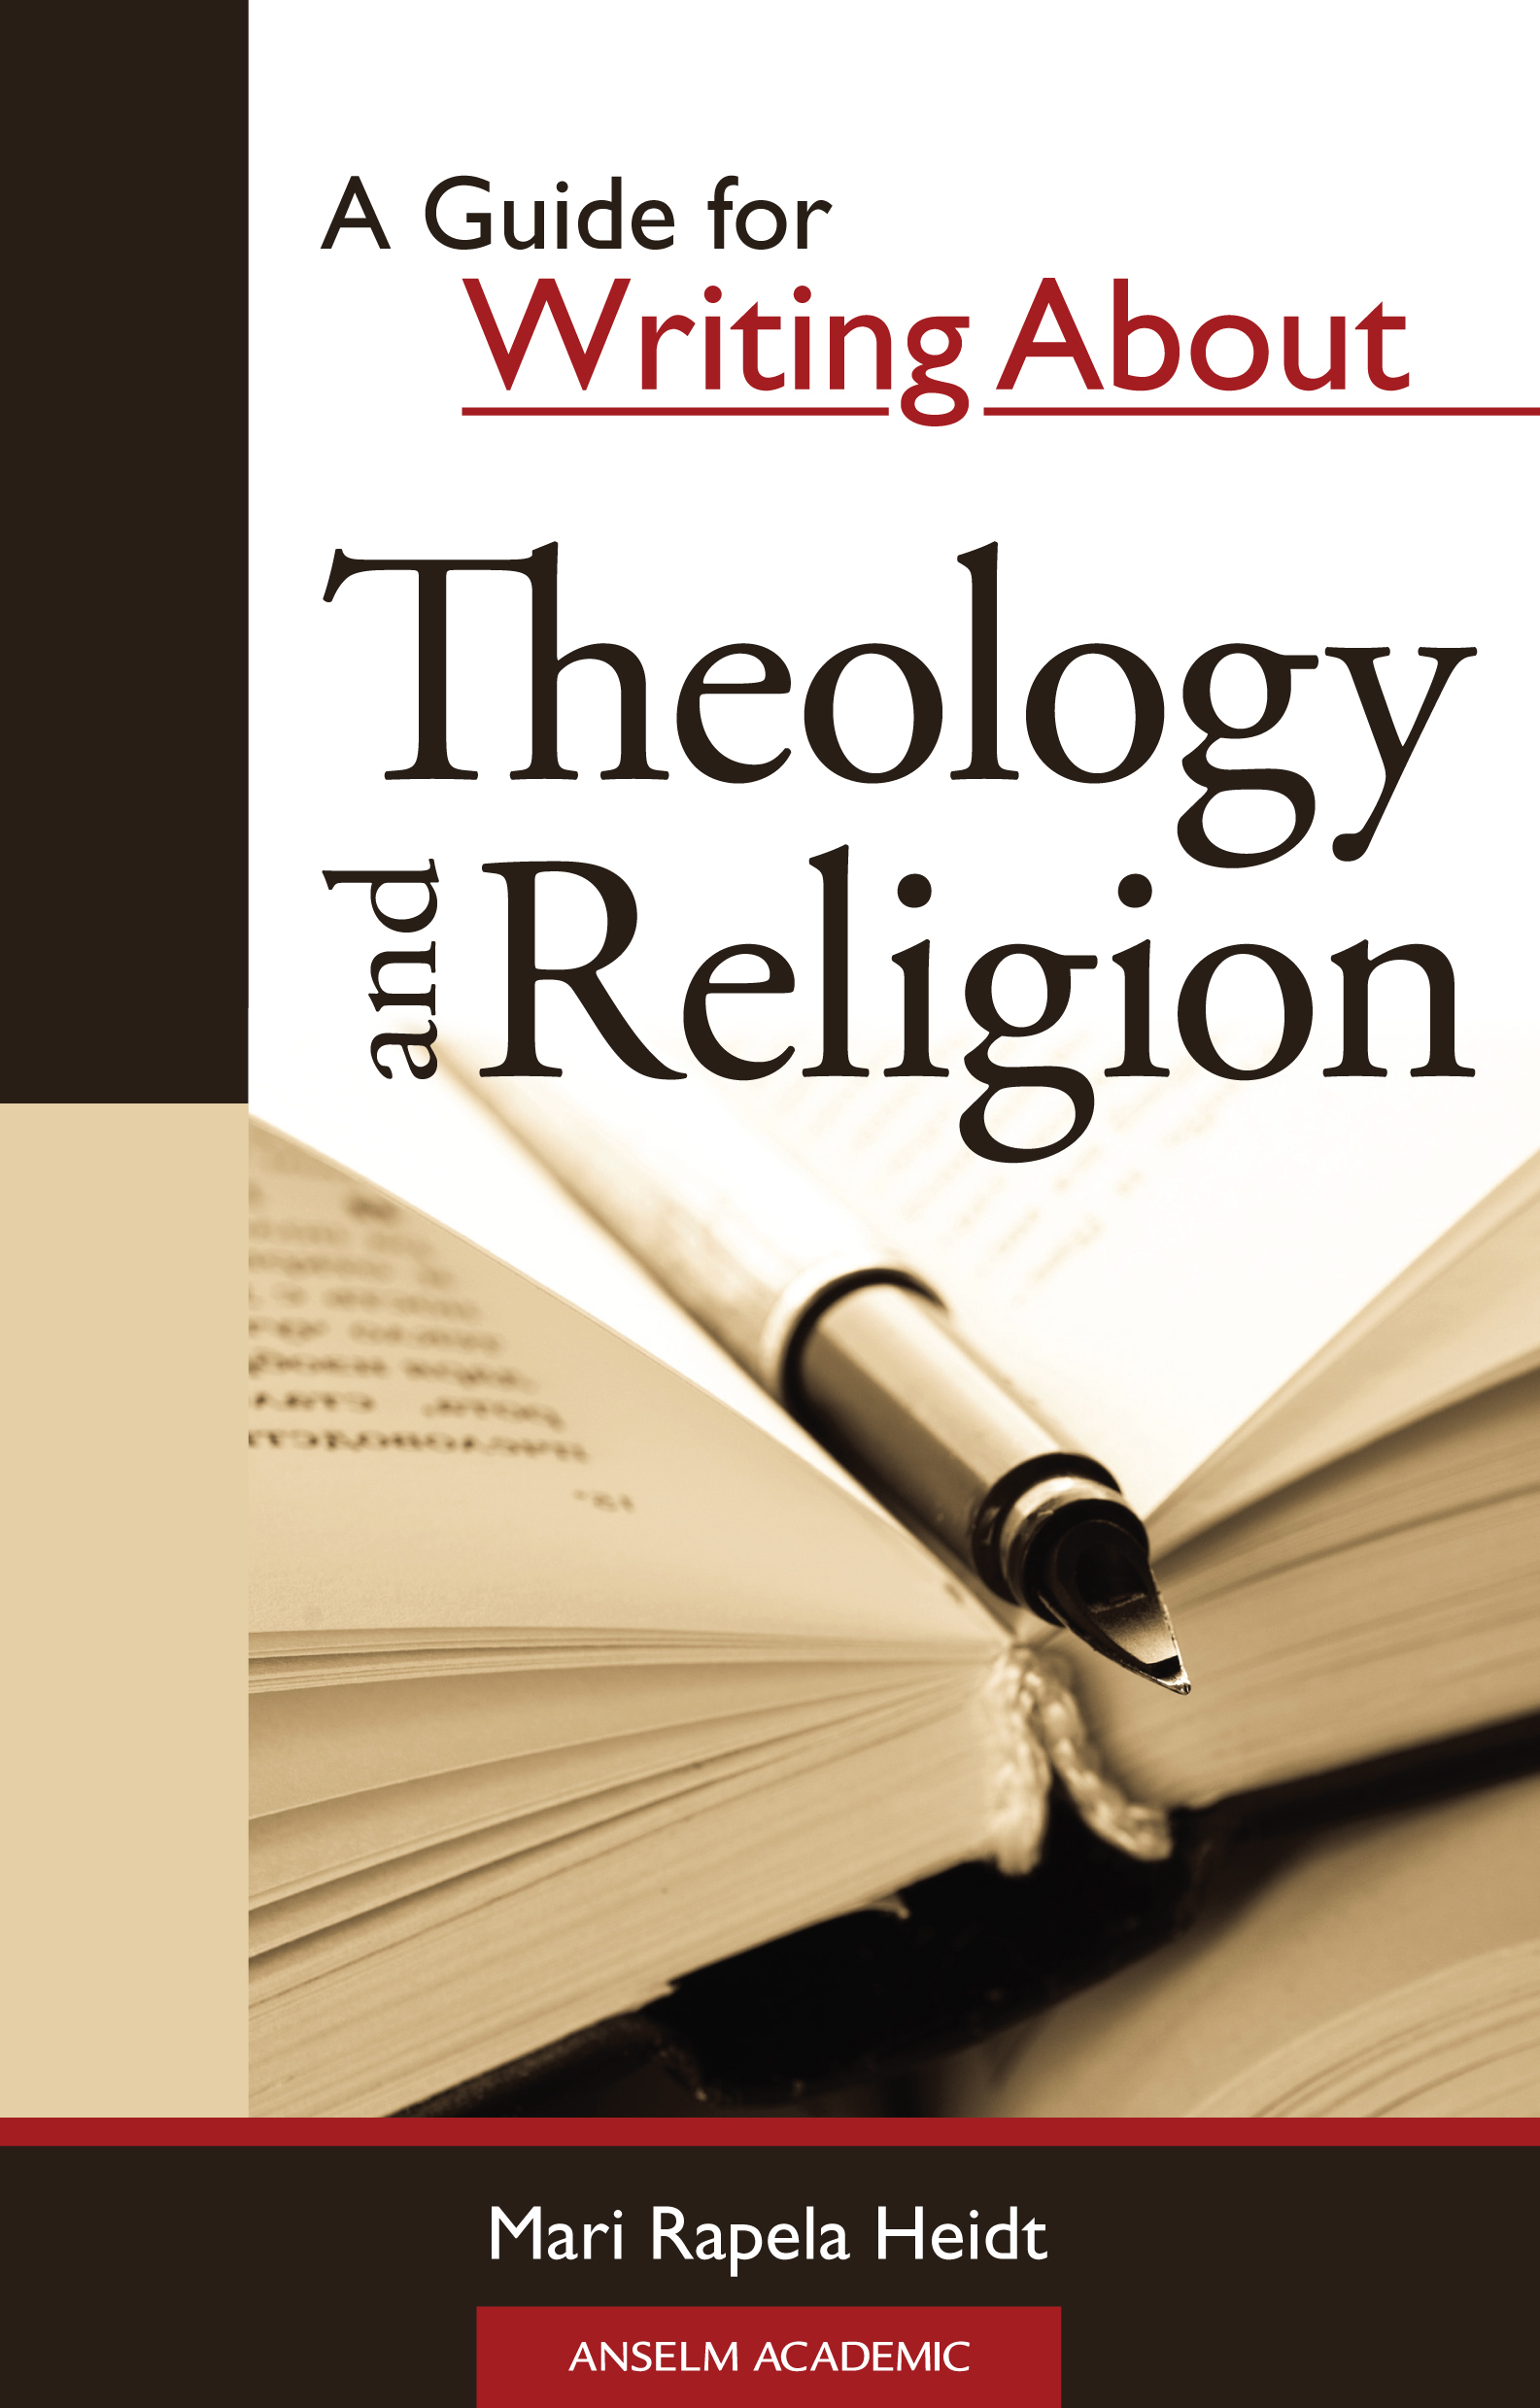 A Guide for Writing about Theology and Religion